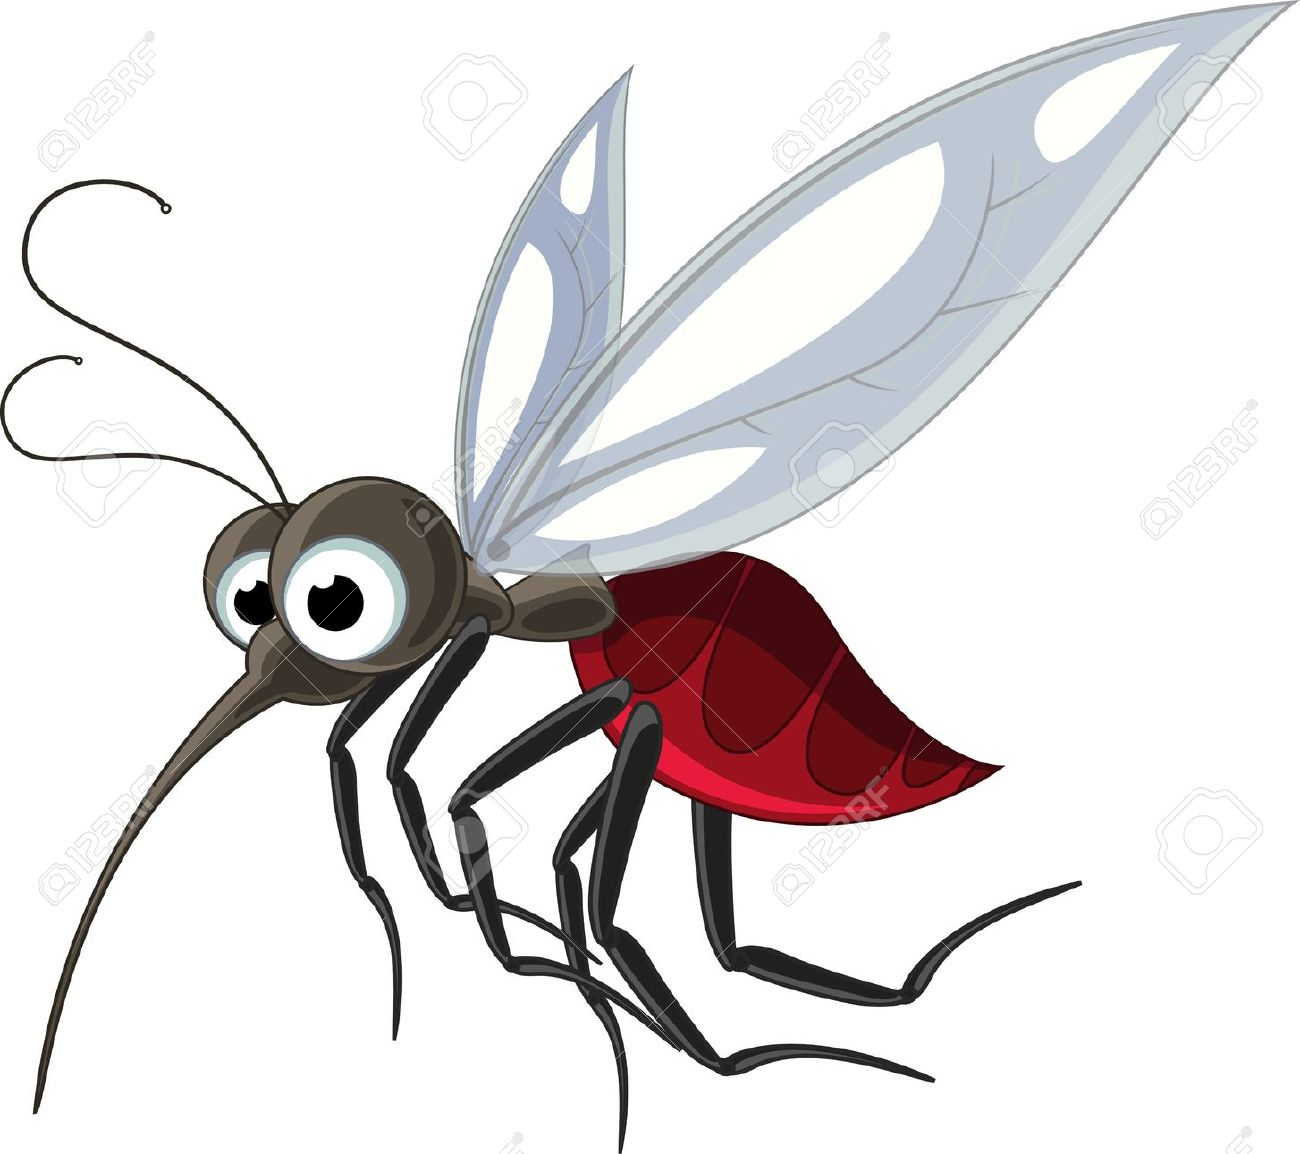 Mosquito images clipart clip free download Mosquito clipart 2 3 - WikiClipArt clip free download